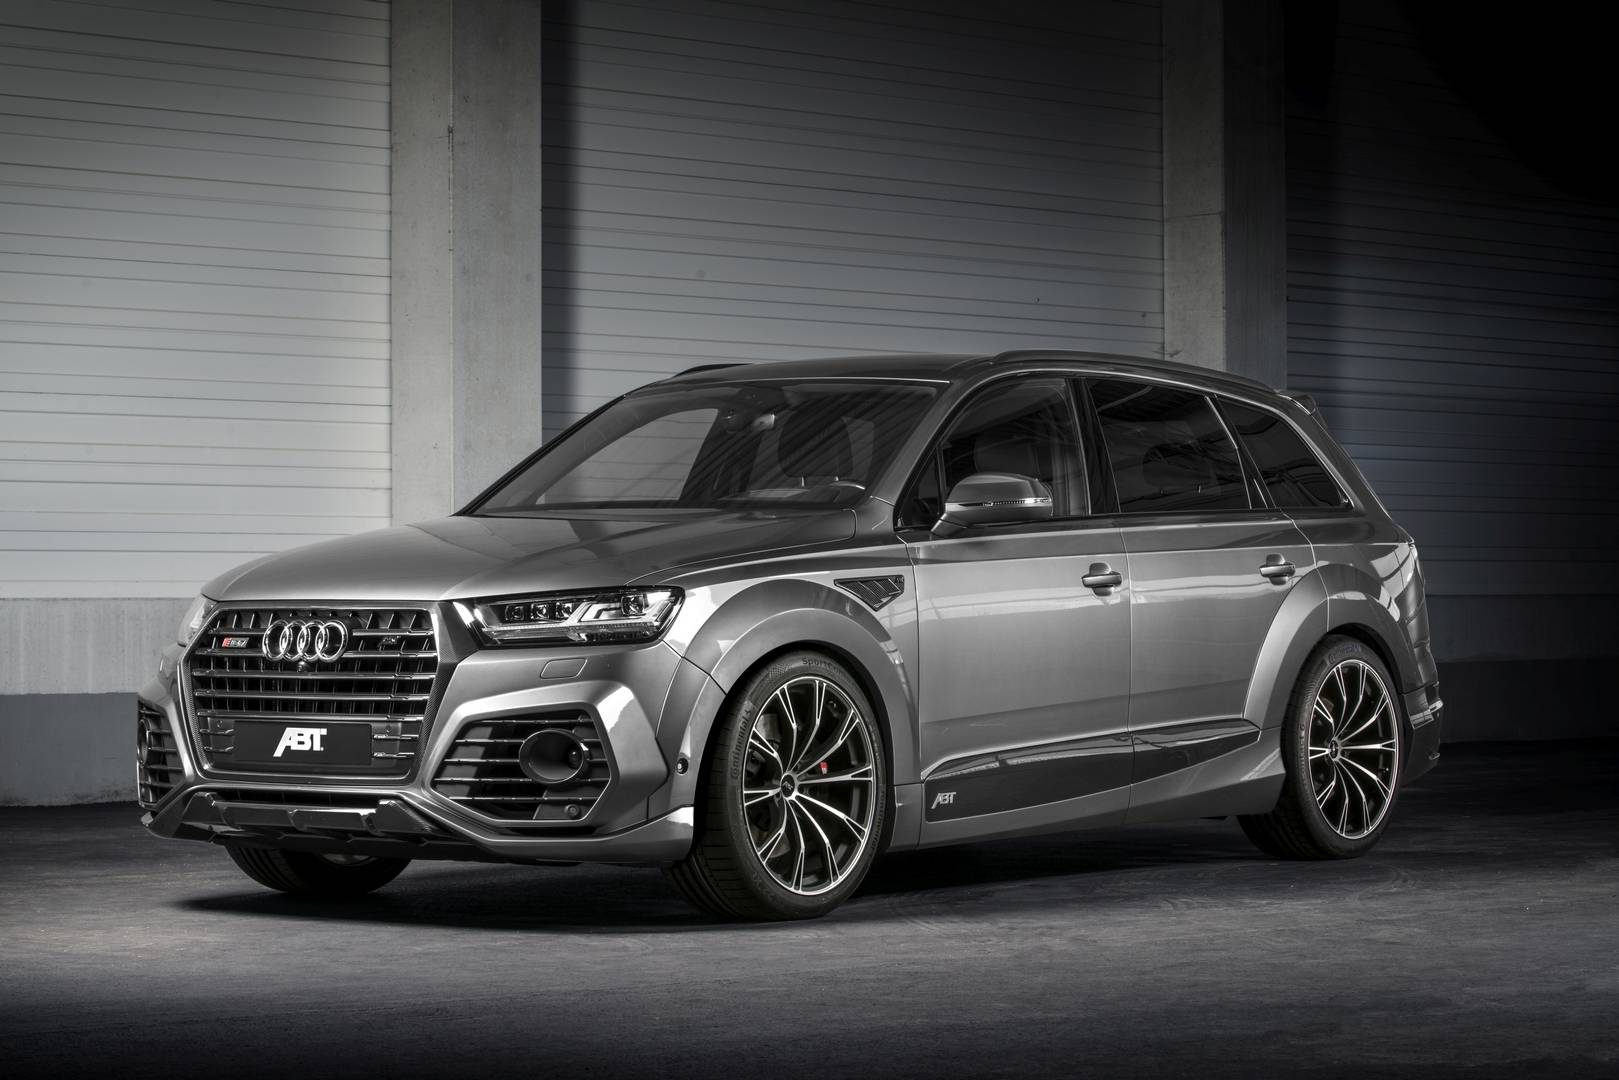 Official Abt Audi Sq7 Gtspirit